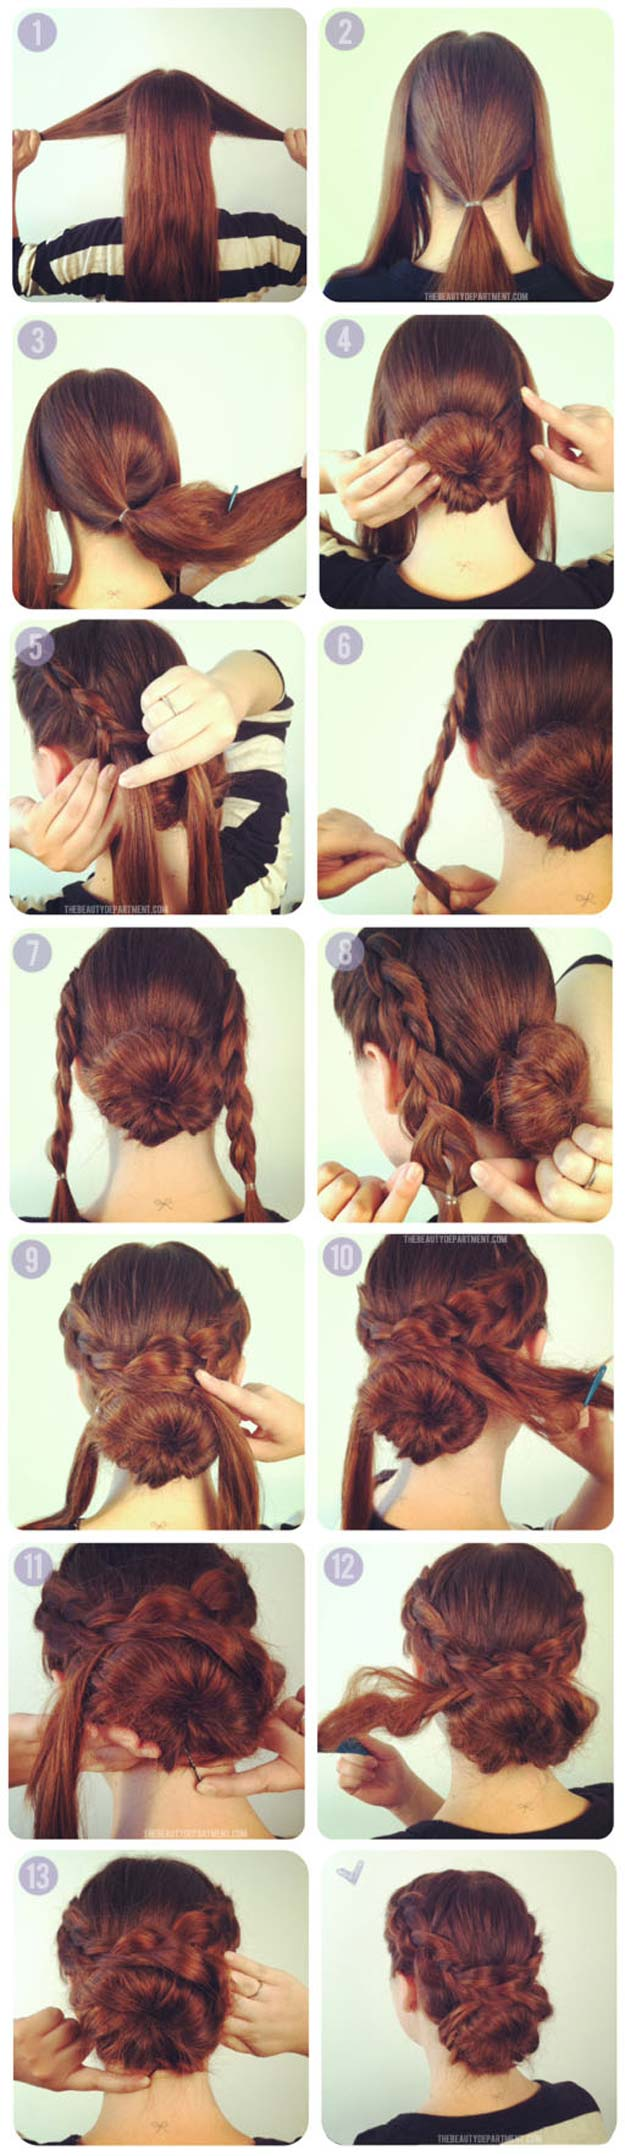 Hair Romance Easy Plaited Updo Hairstyle Tutorial Click Through For Full